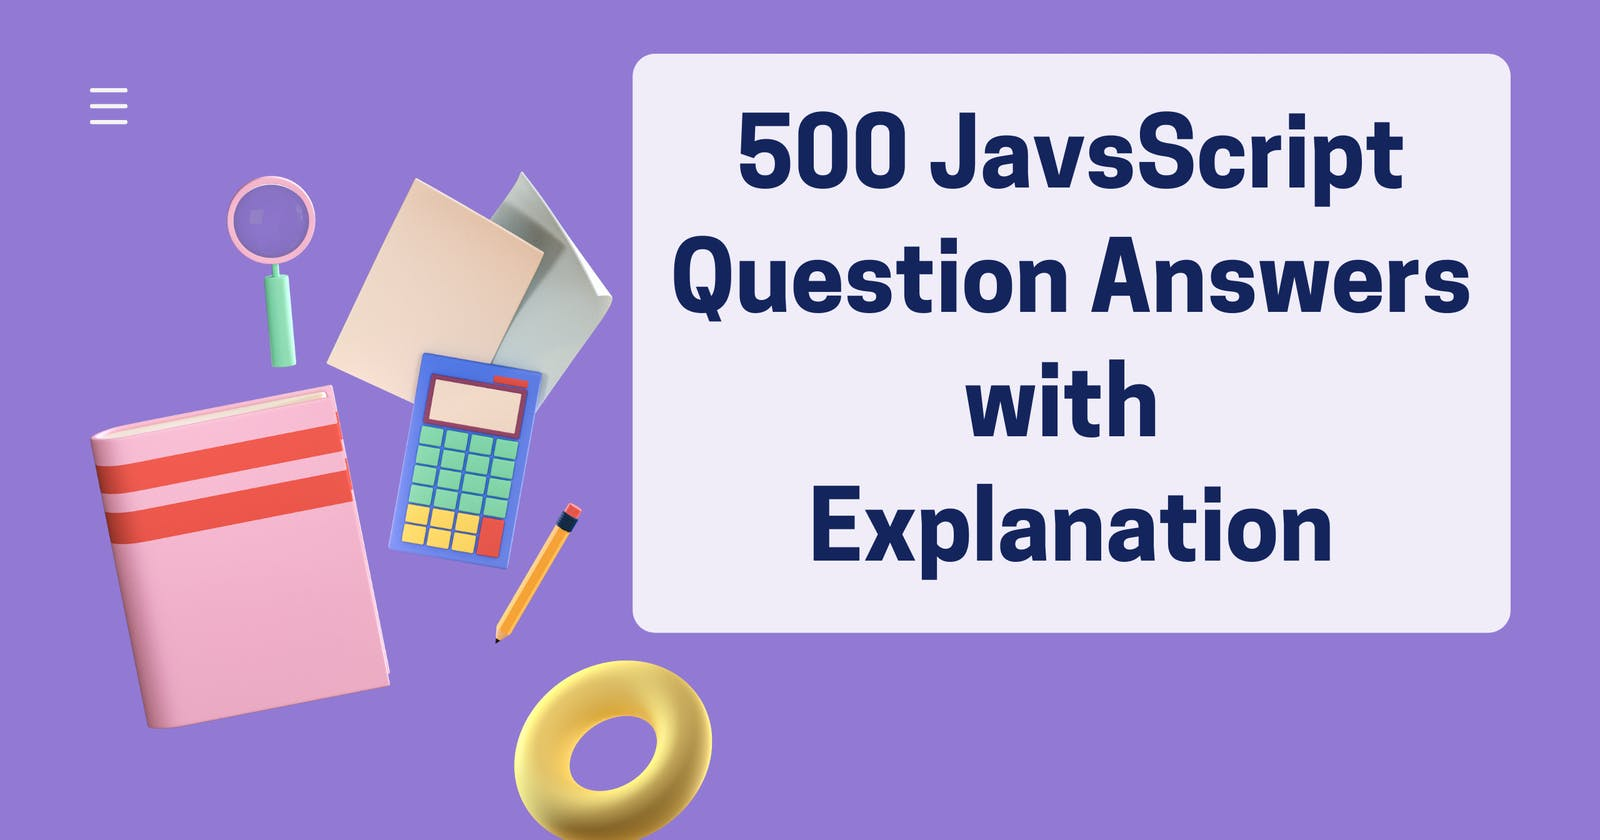 Part-2 : 500 JavaScript Important Questions with Answers and Explanation